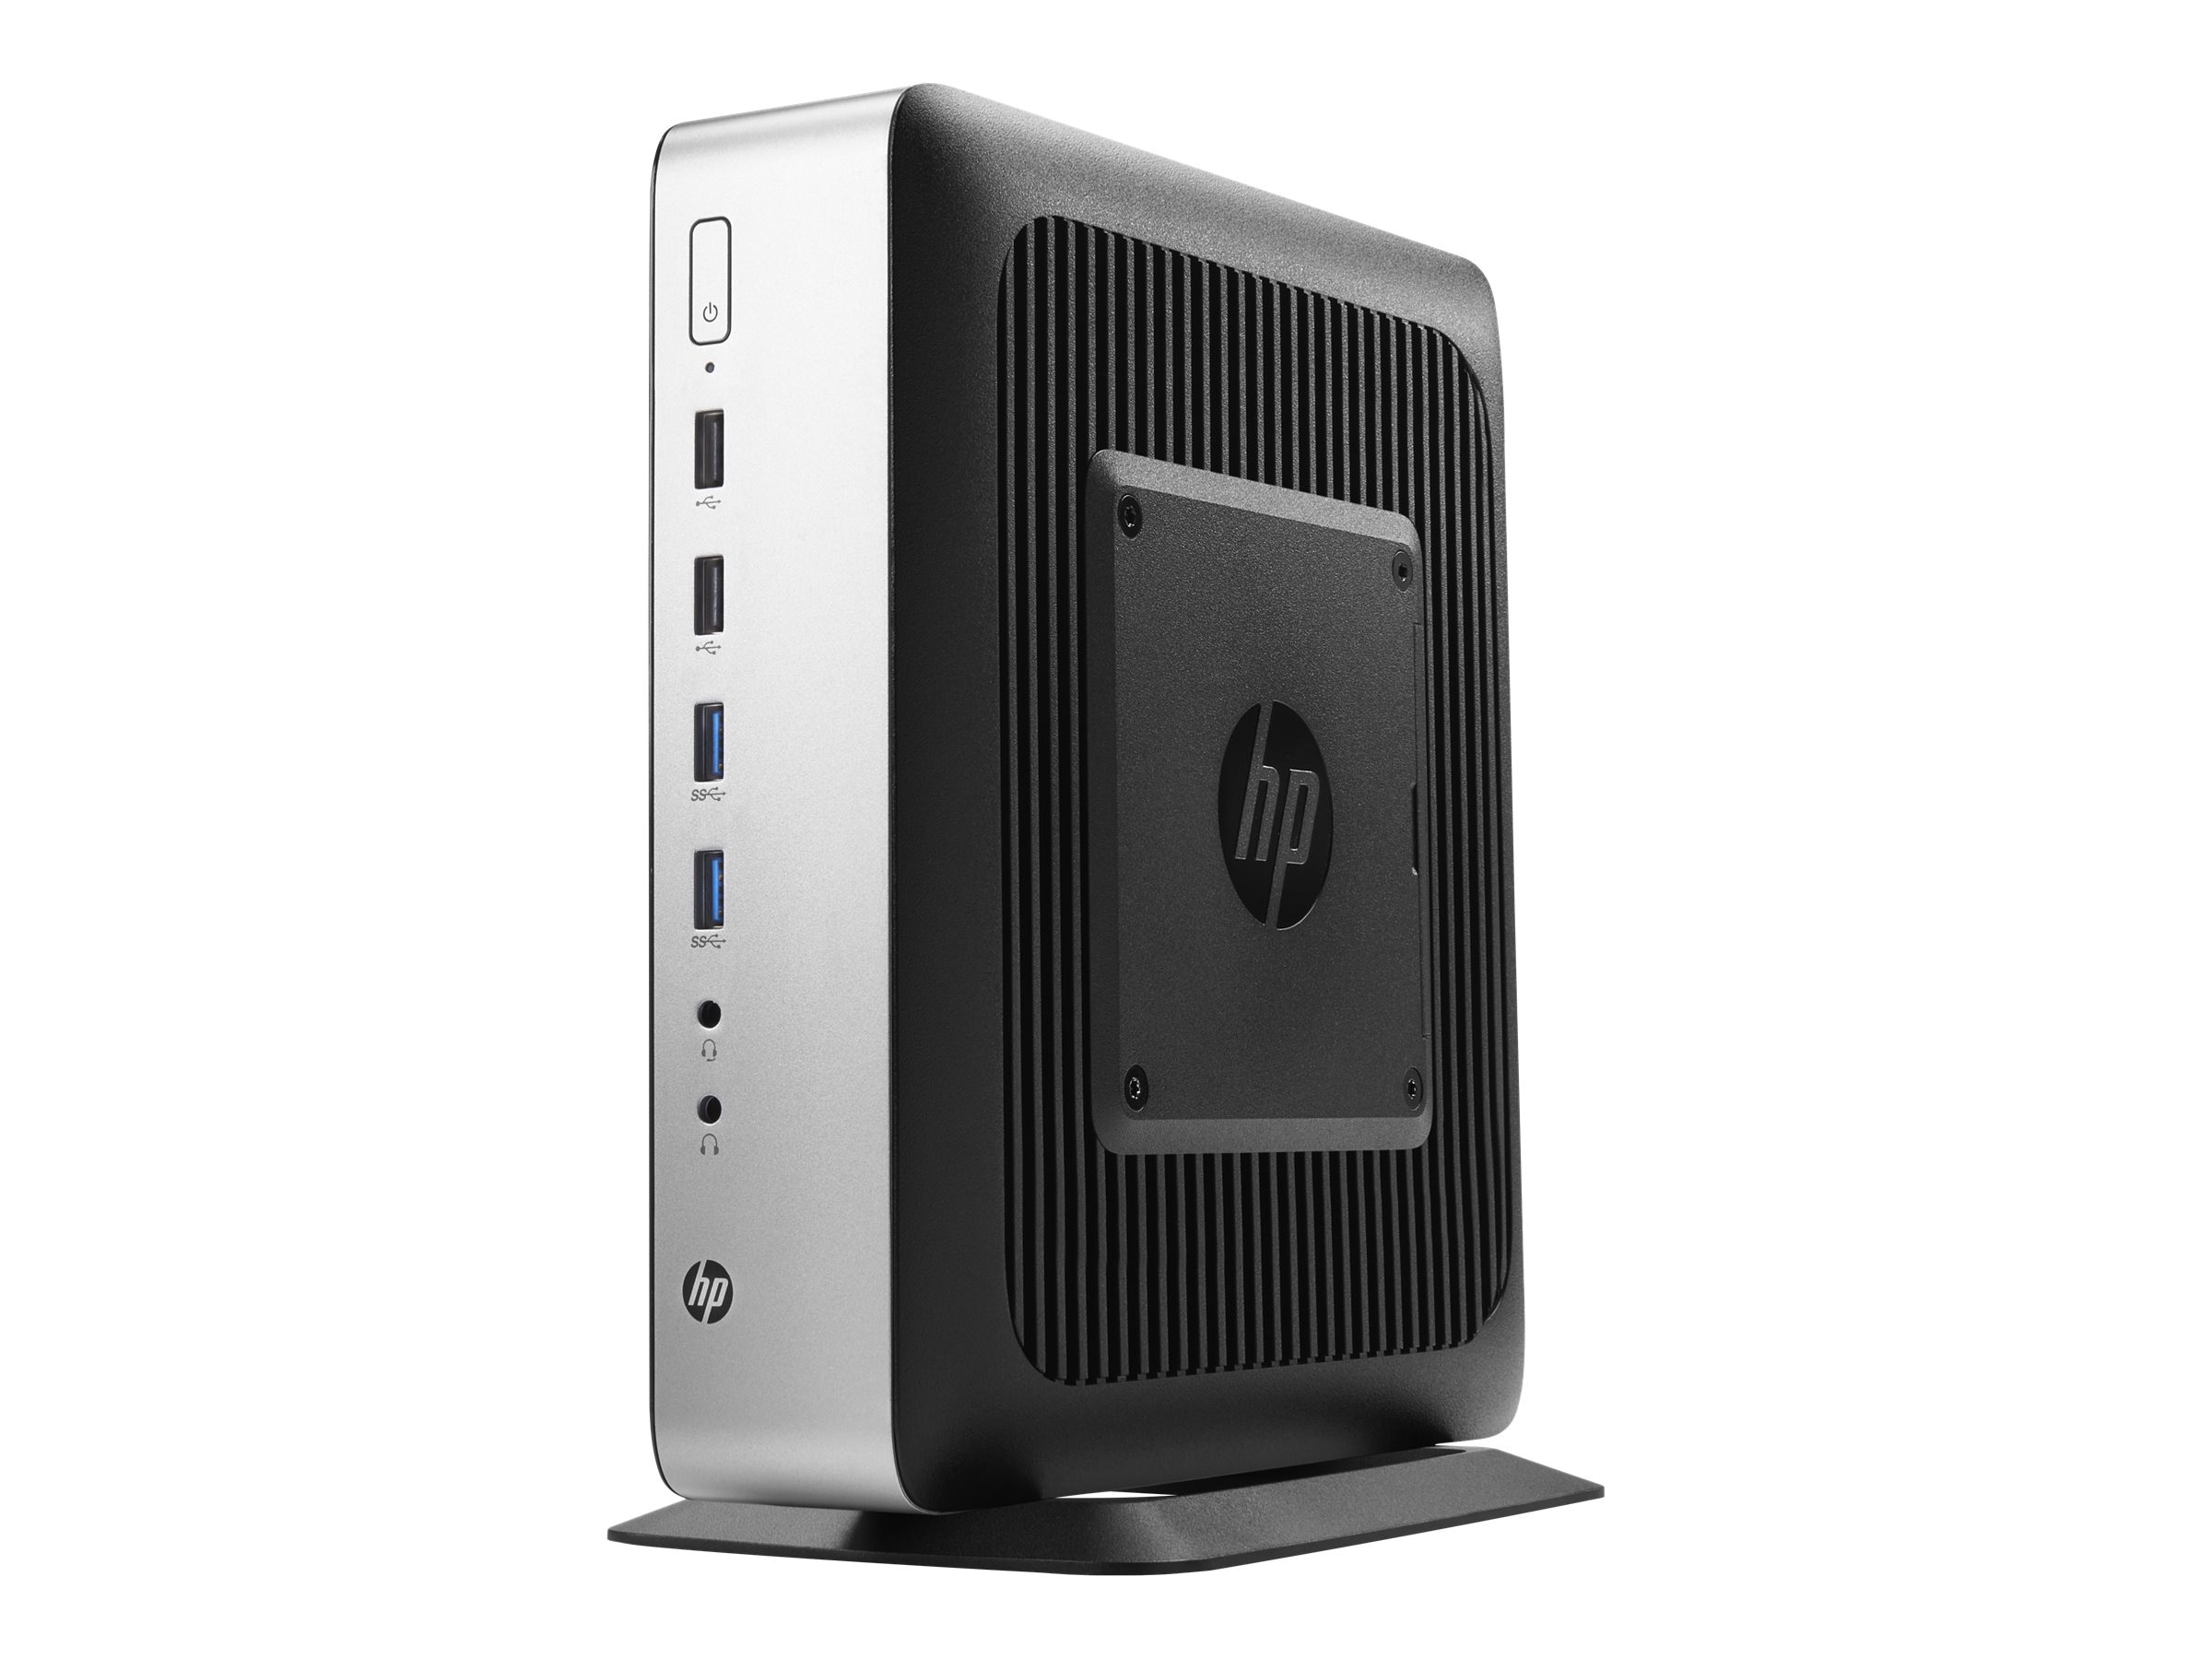 HP t730 Thin Client AMD RX-427BB 2.7GHz 8GB 32GB Flash W2100 GbE WES7P, P5V92UT#ABA